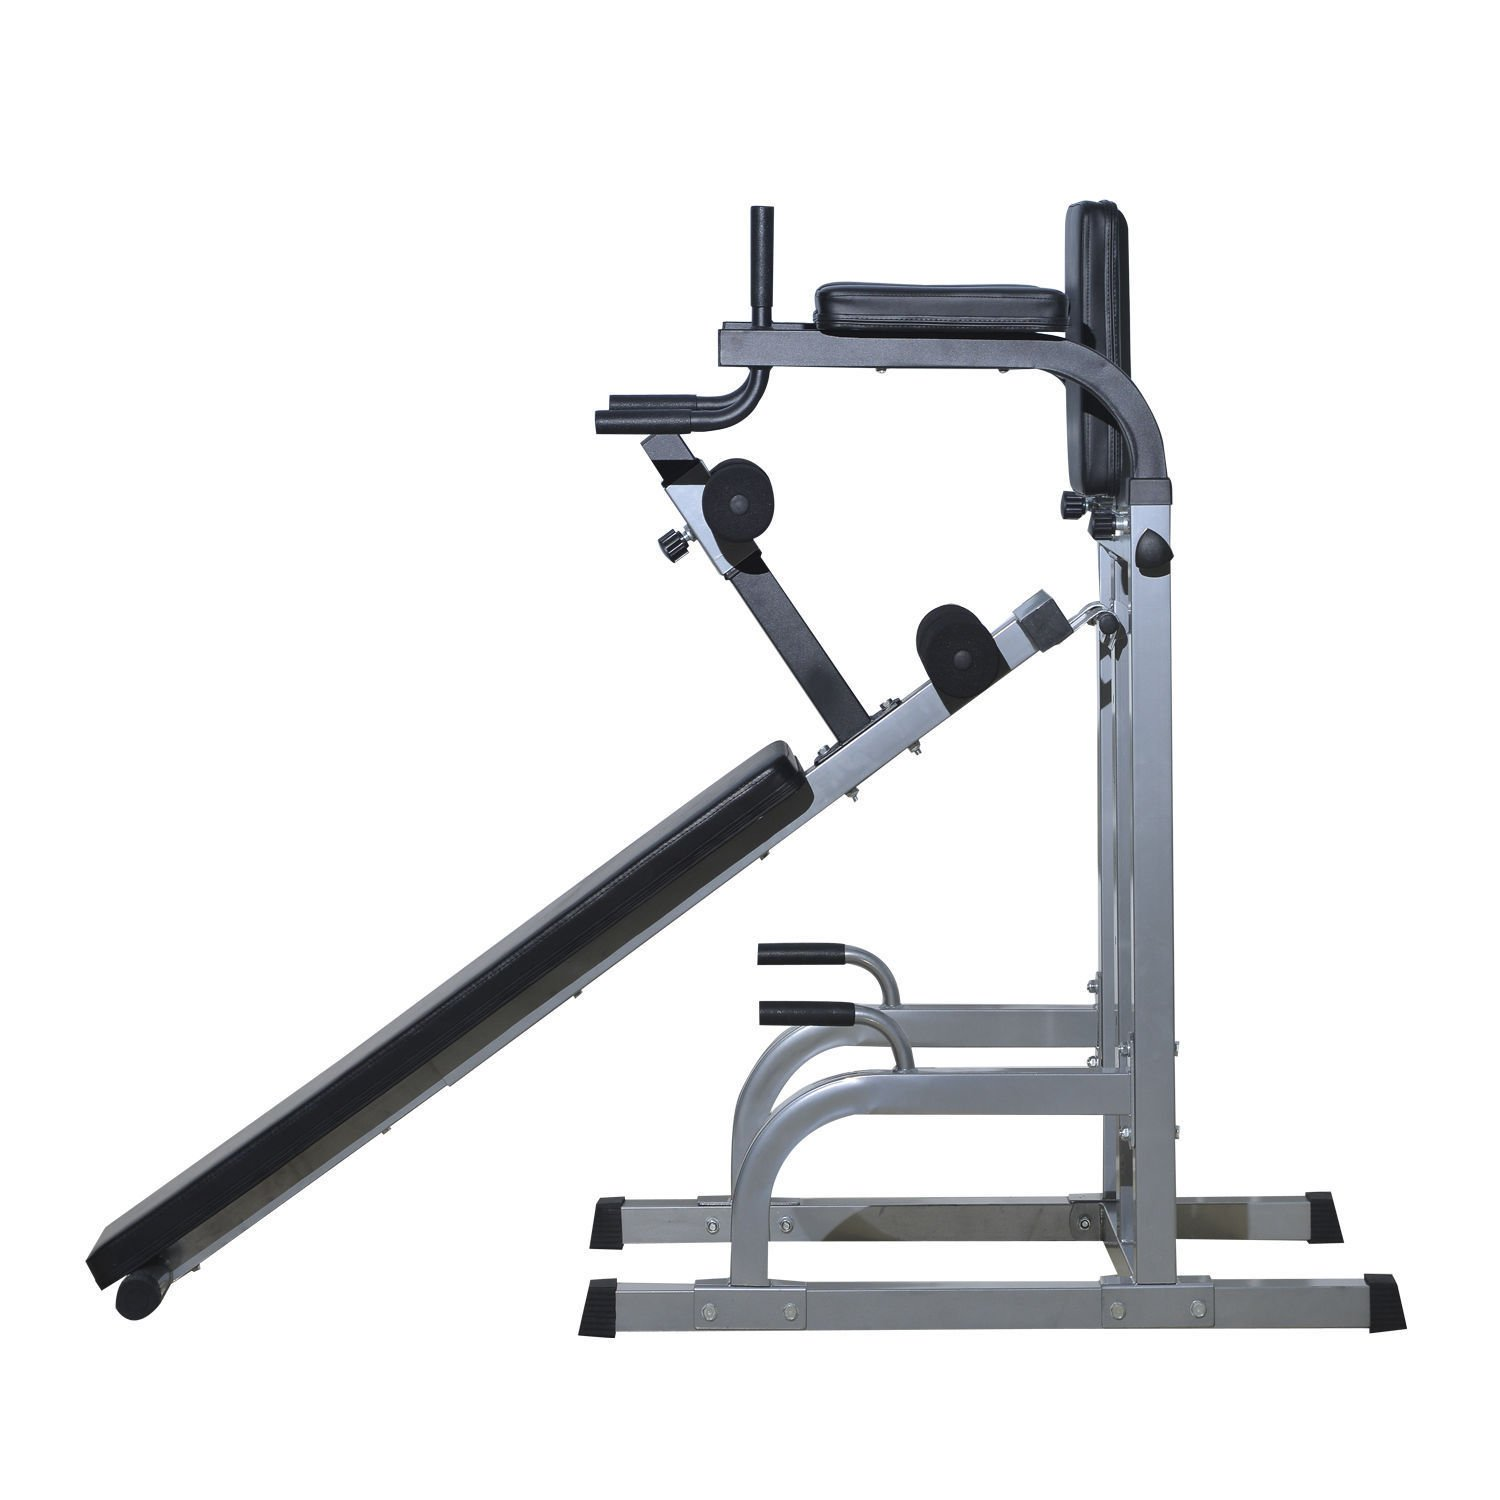 Home Gym Workout Strength Fitness Training Power Tower Dip Station Weight Bench by Happybeamy (Image #9)